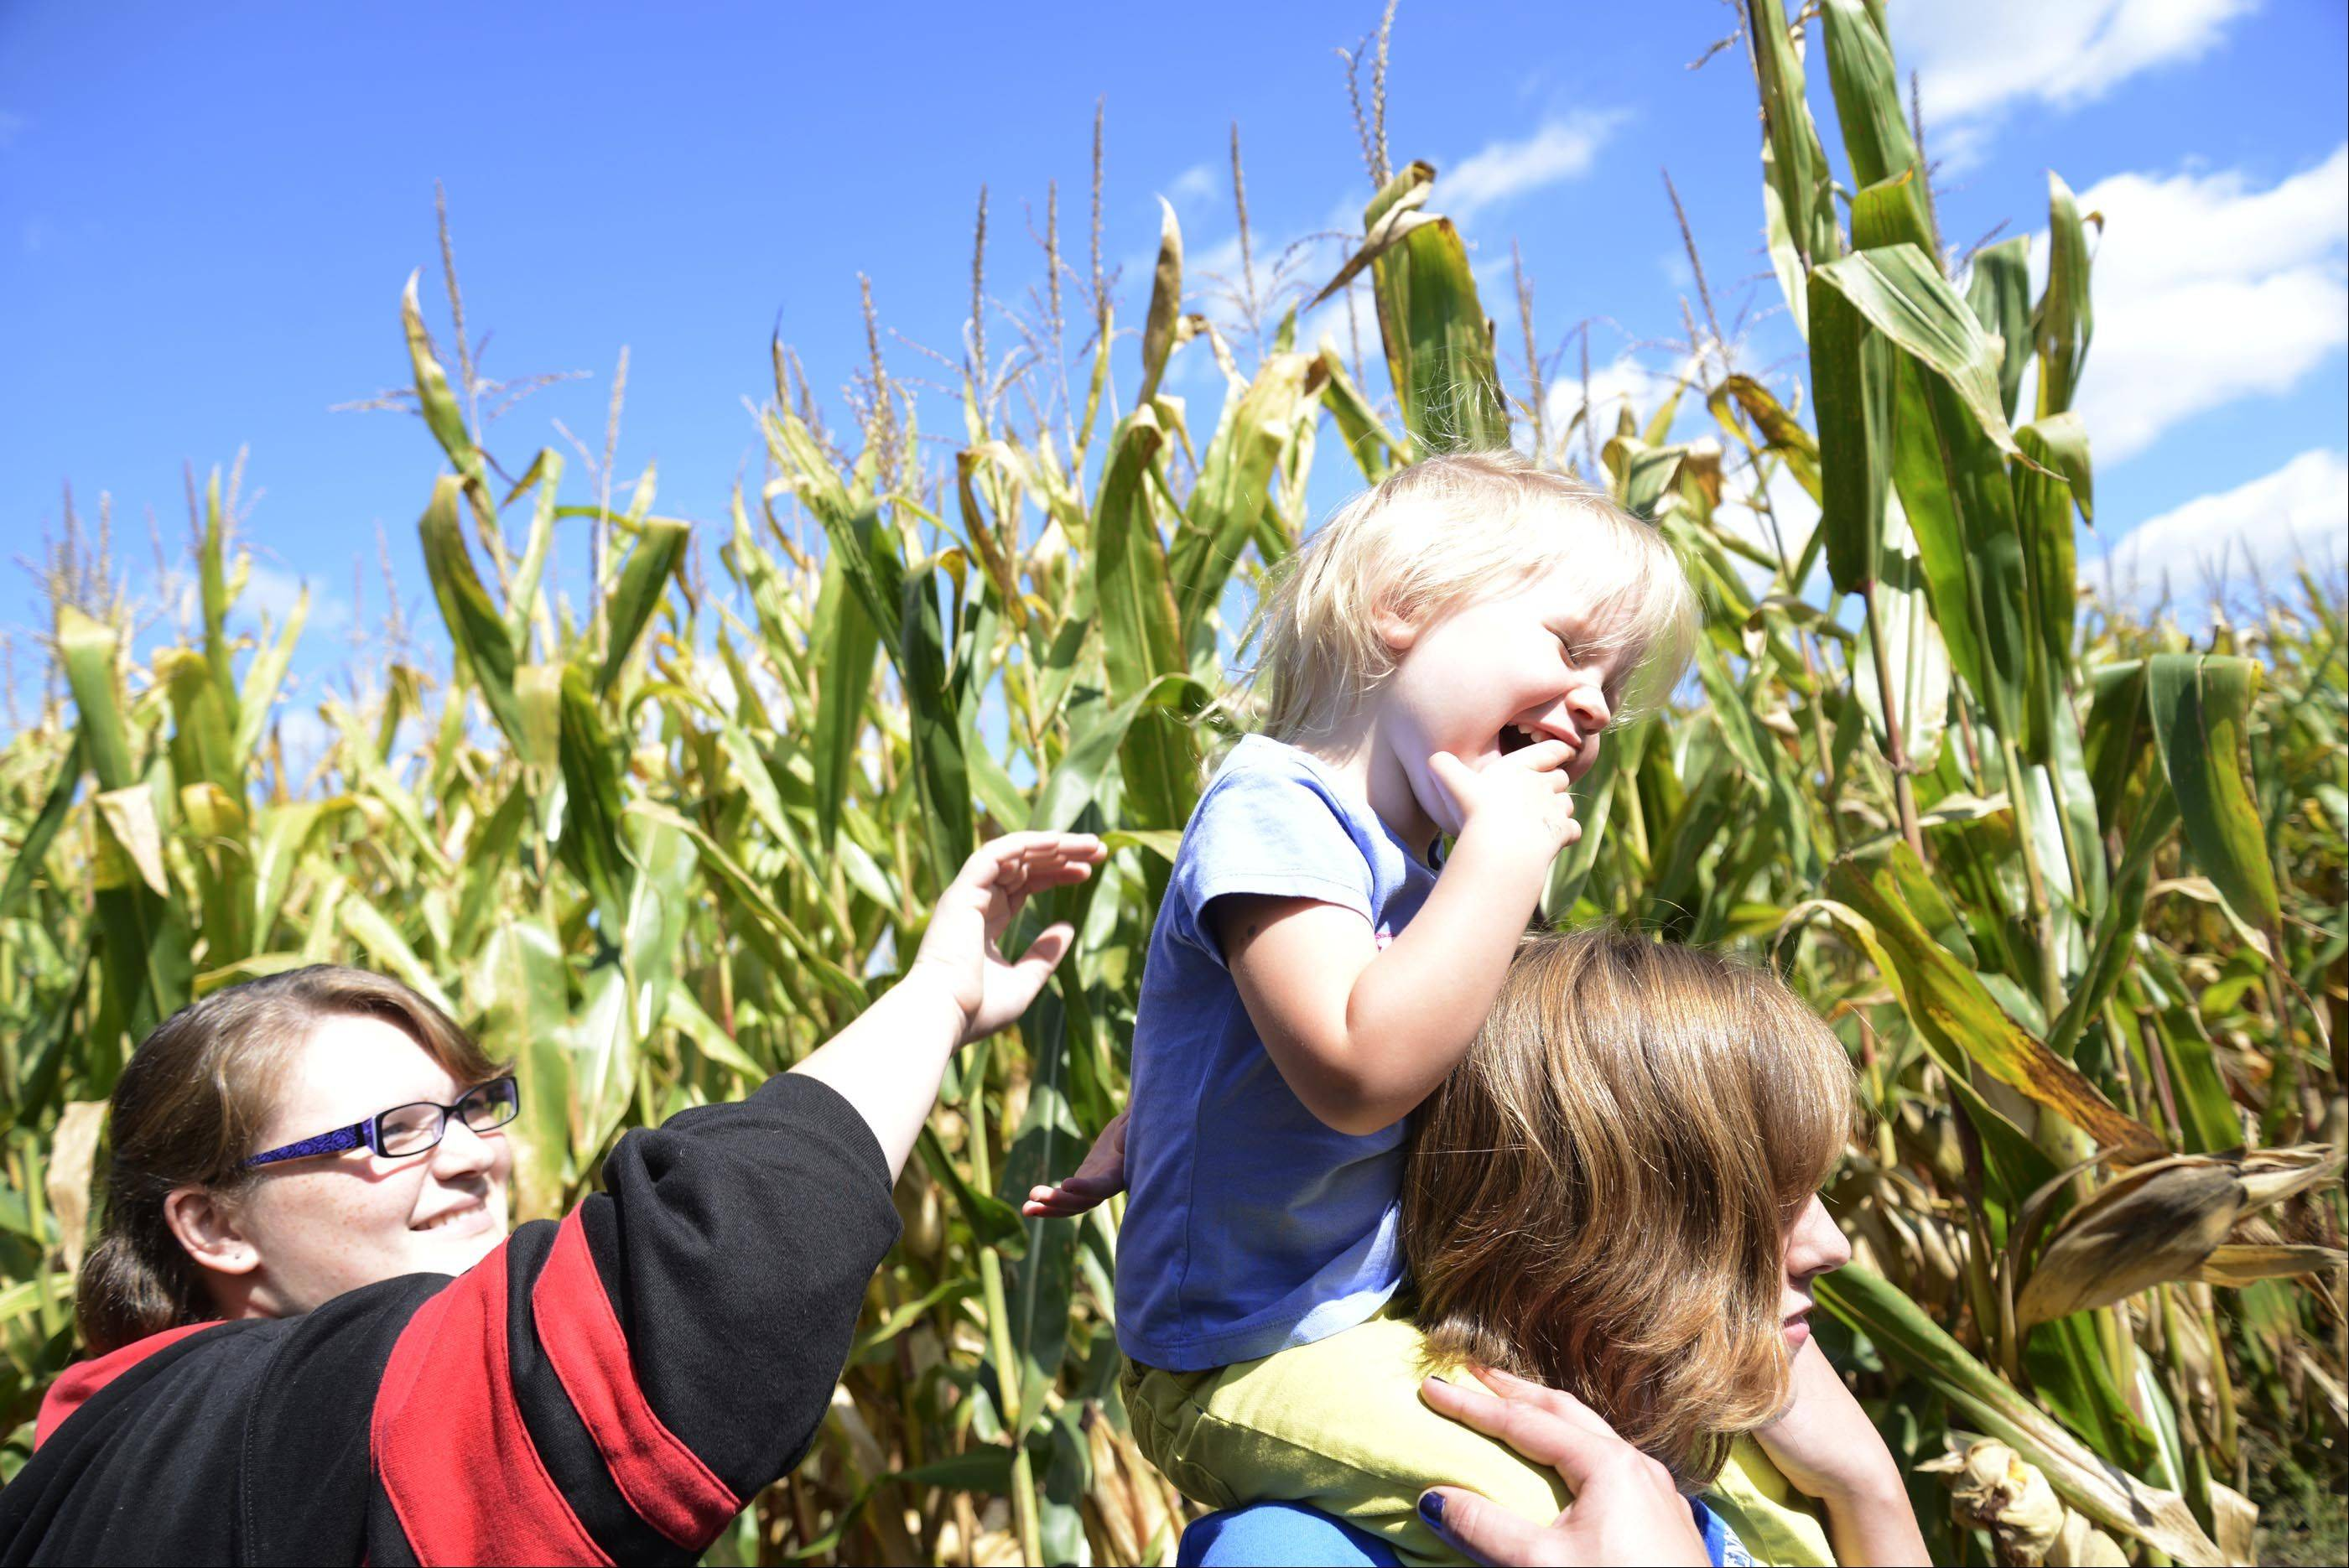 Lexi Hanson laughs on the shoulders of Hayle Pillsburg, of Maple Park, as her sister Kelsey Hanson teases her at the Norton's Produce & Garden Center corn maze.